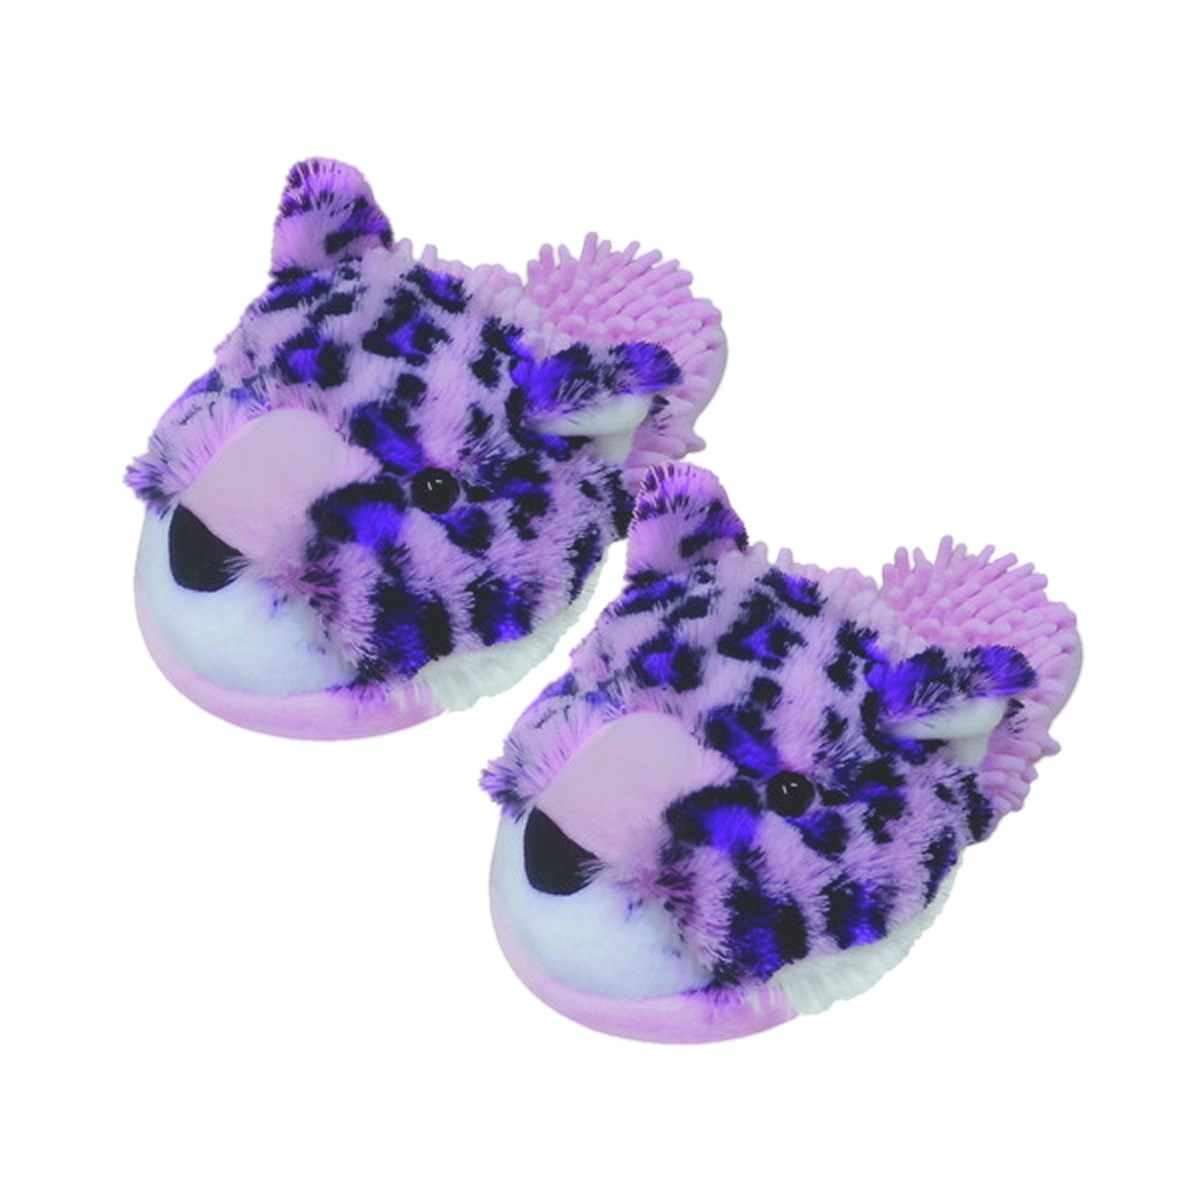 Aroma Home Fun For Feet Fuzzy Slippers - Pink Leopard